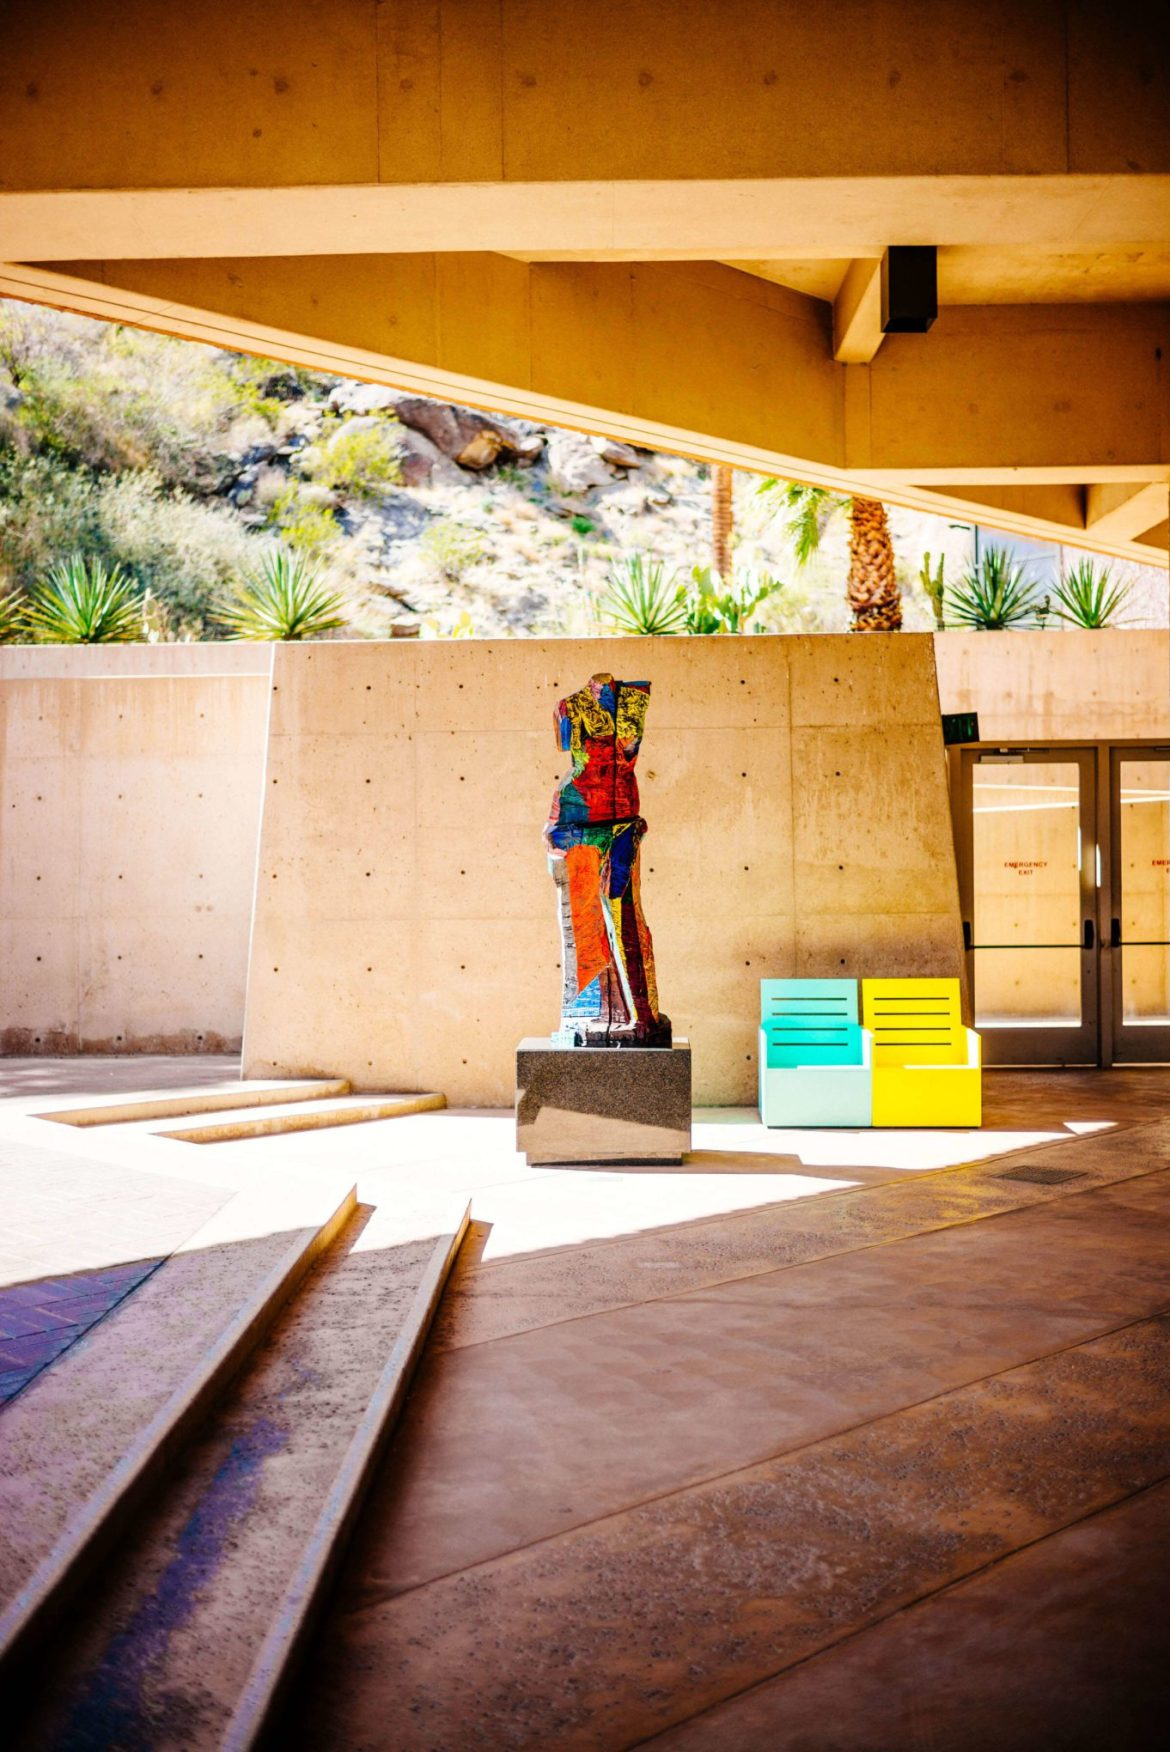 View this Chairs in the sculpture garden. If you love modern art you must visit the Palm Springs Art Museum, The Taste Edit